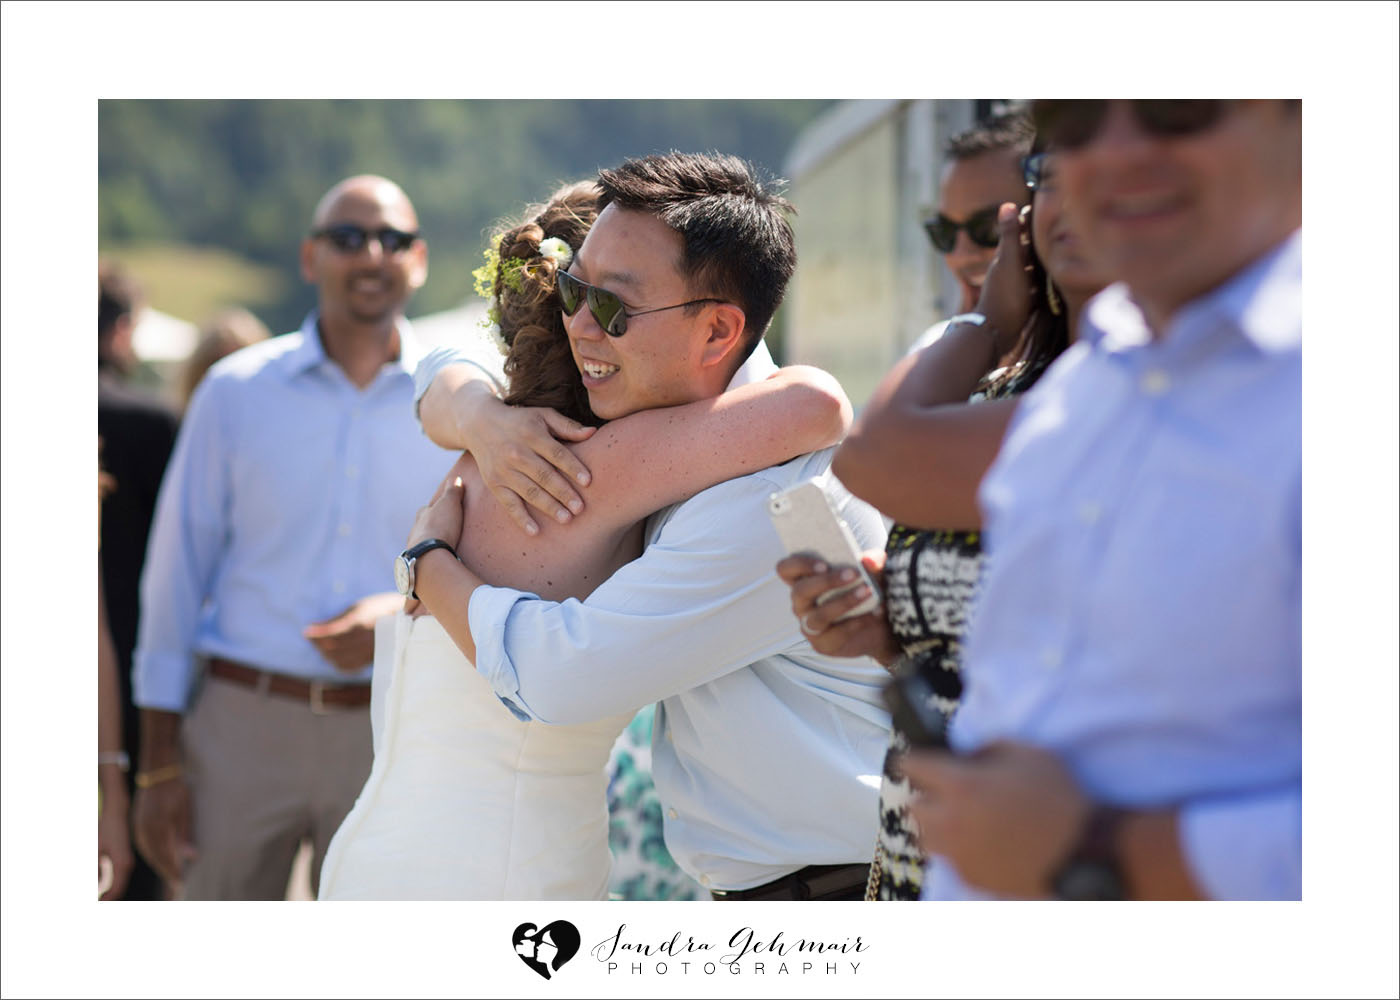 017_heiraten_am_see_spitzvilla_sandra_gehmair